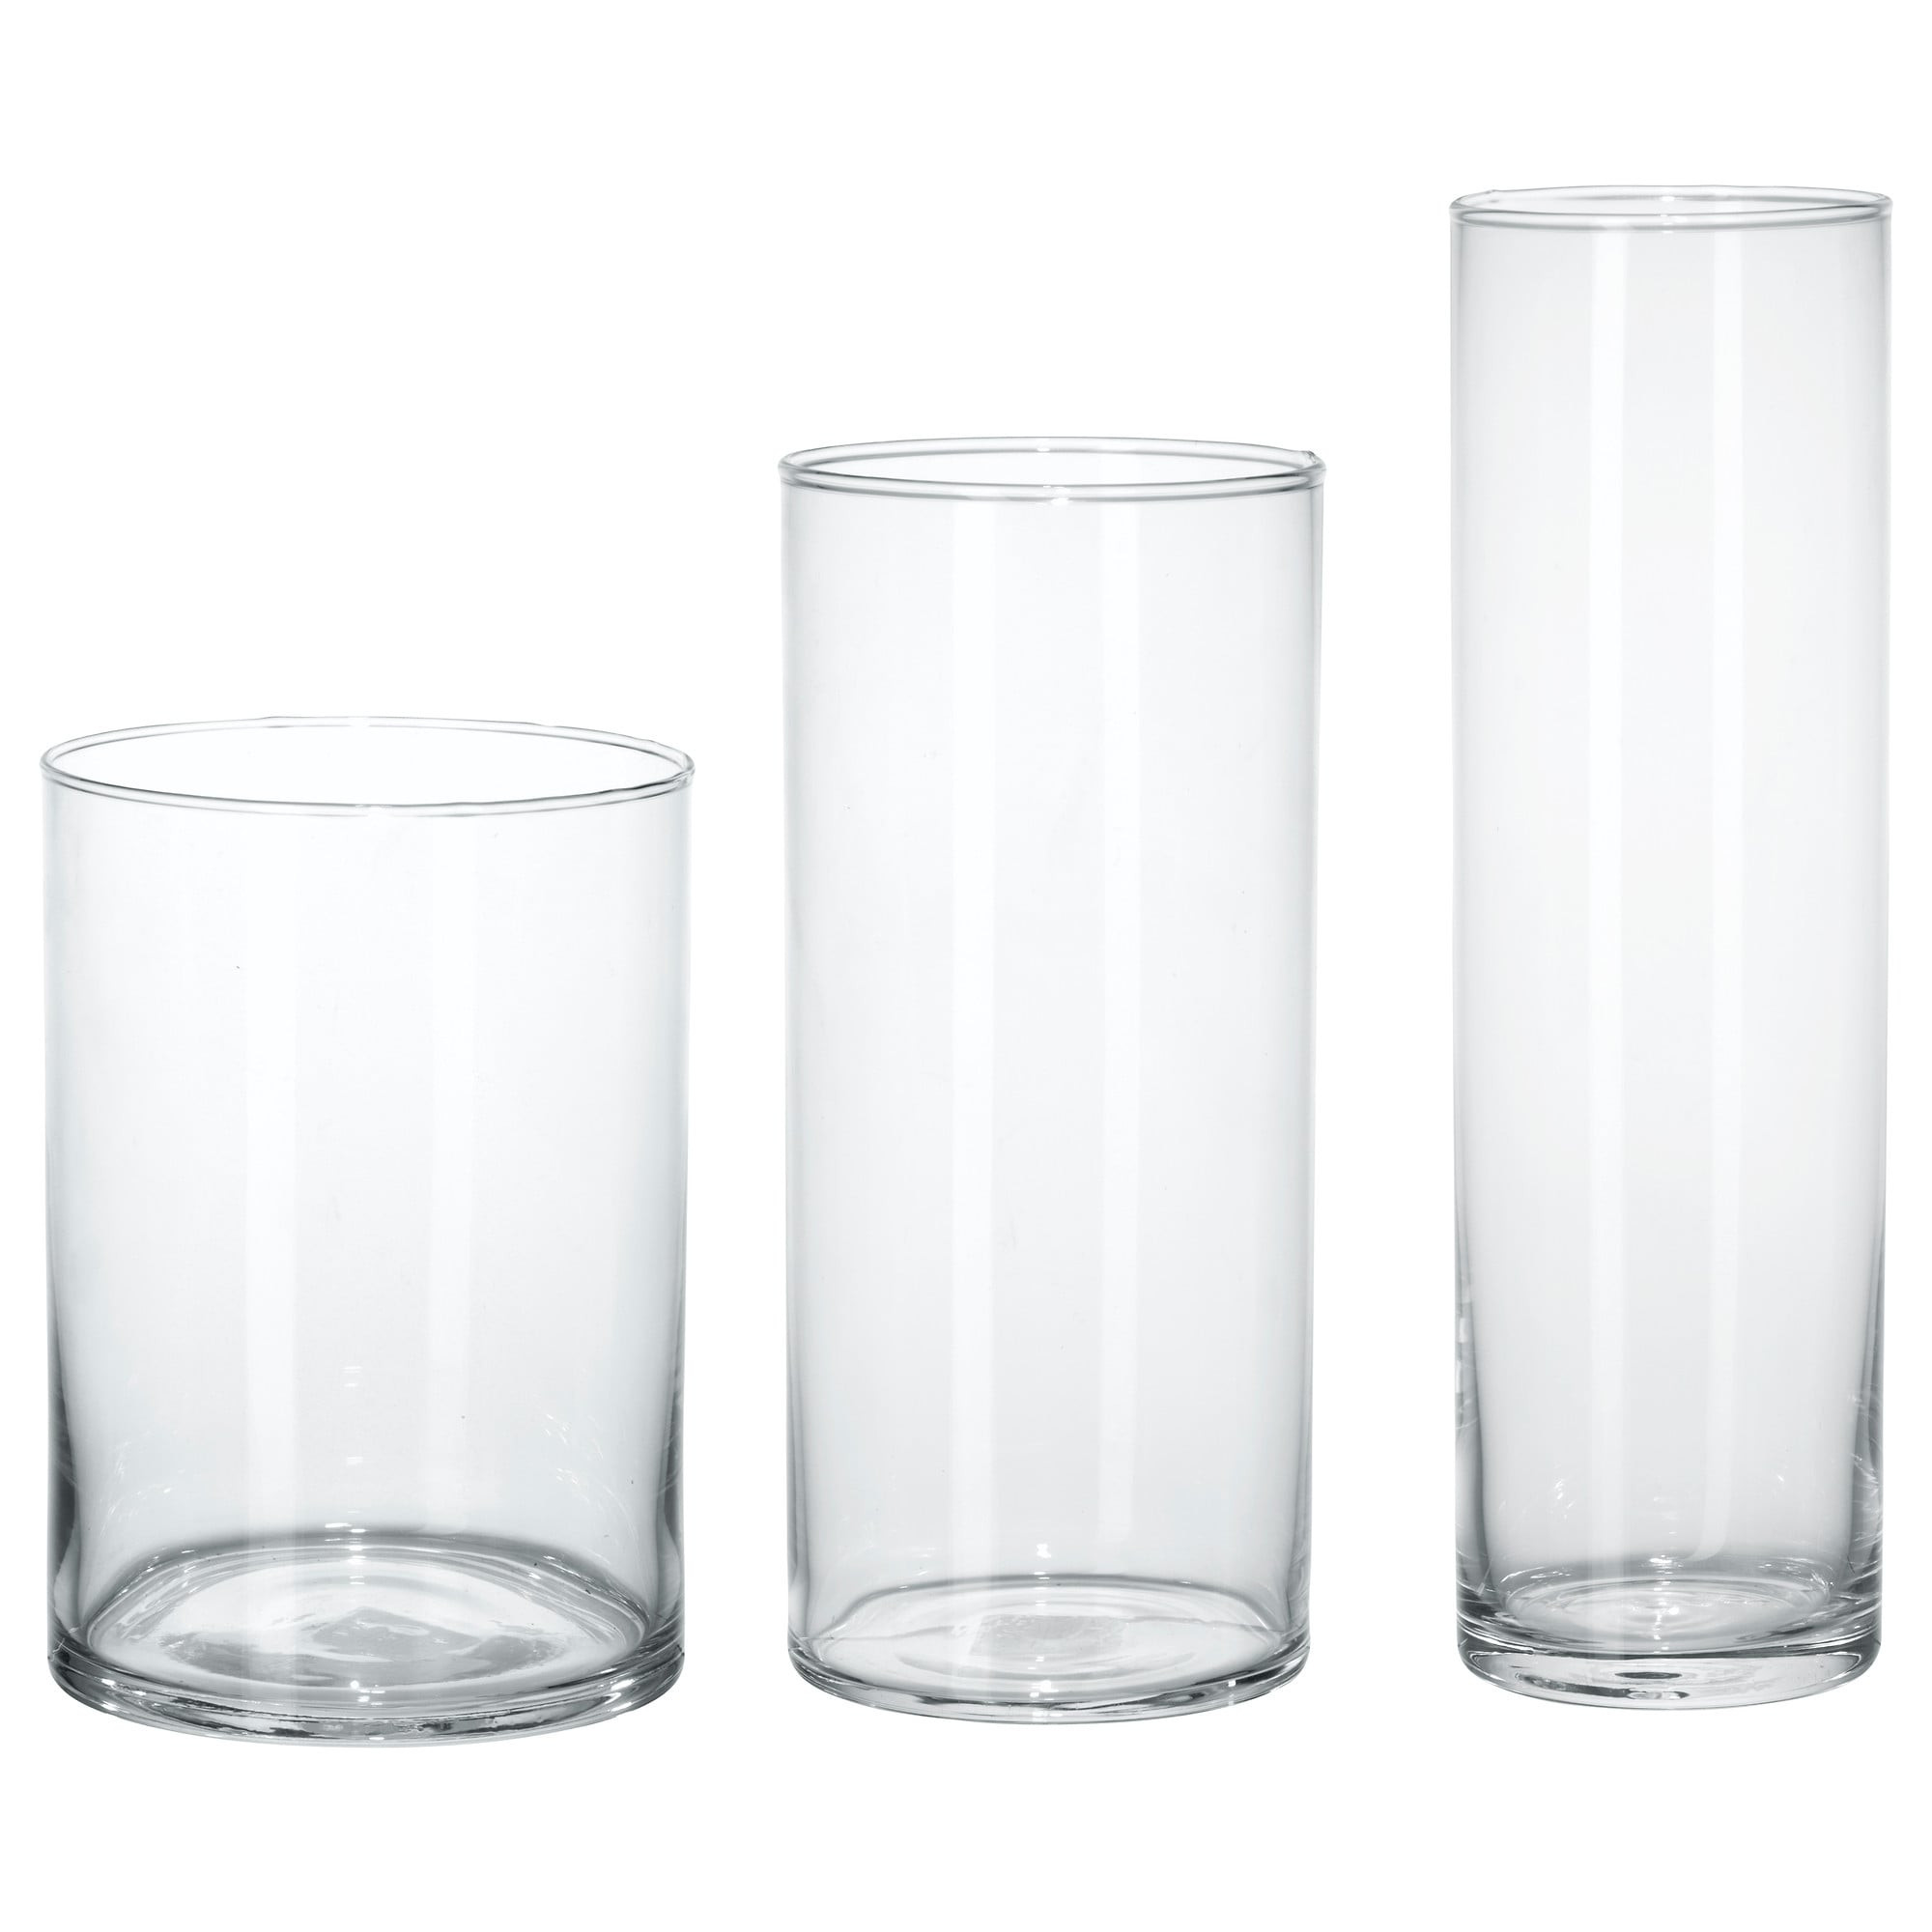 12 inch tall glass vases of cylinder vase set of 3 ikea intended for english frana§ais